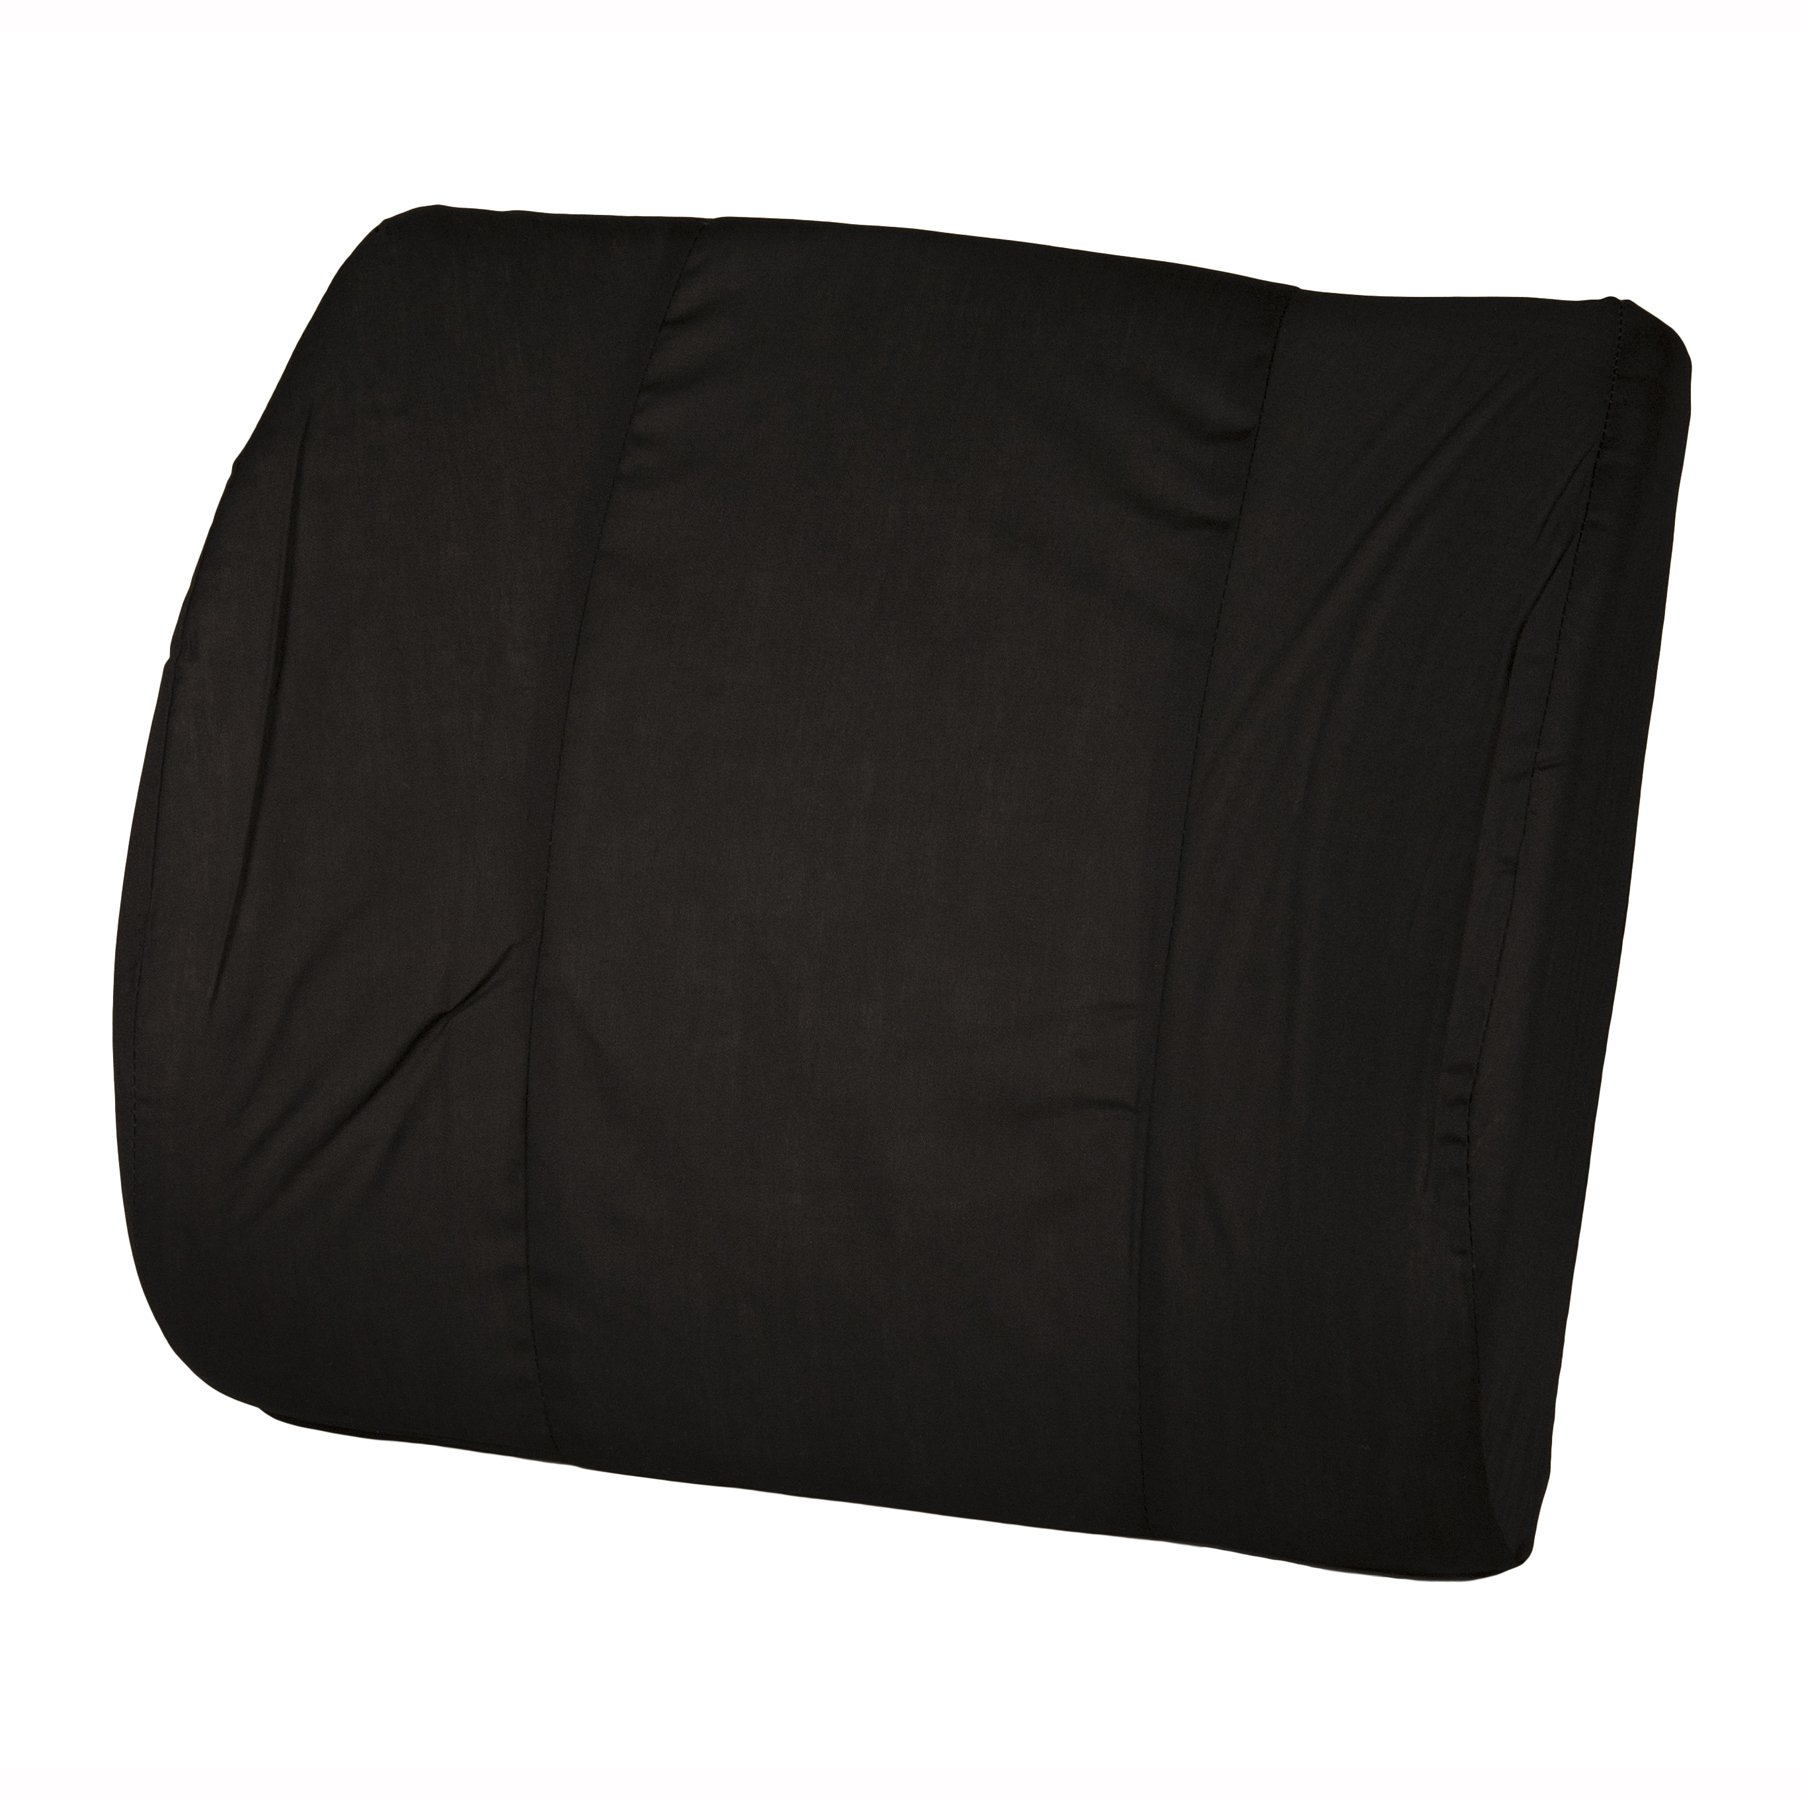 Pcp Lumbar Back Support, Removable Cover Sacro Cushion, Black